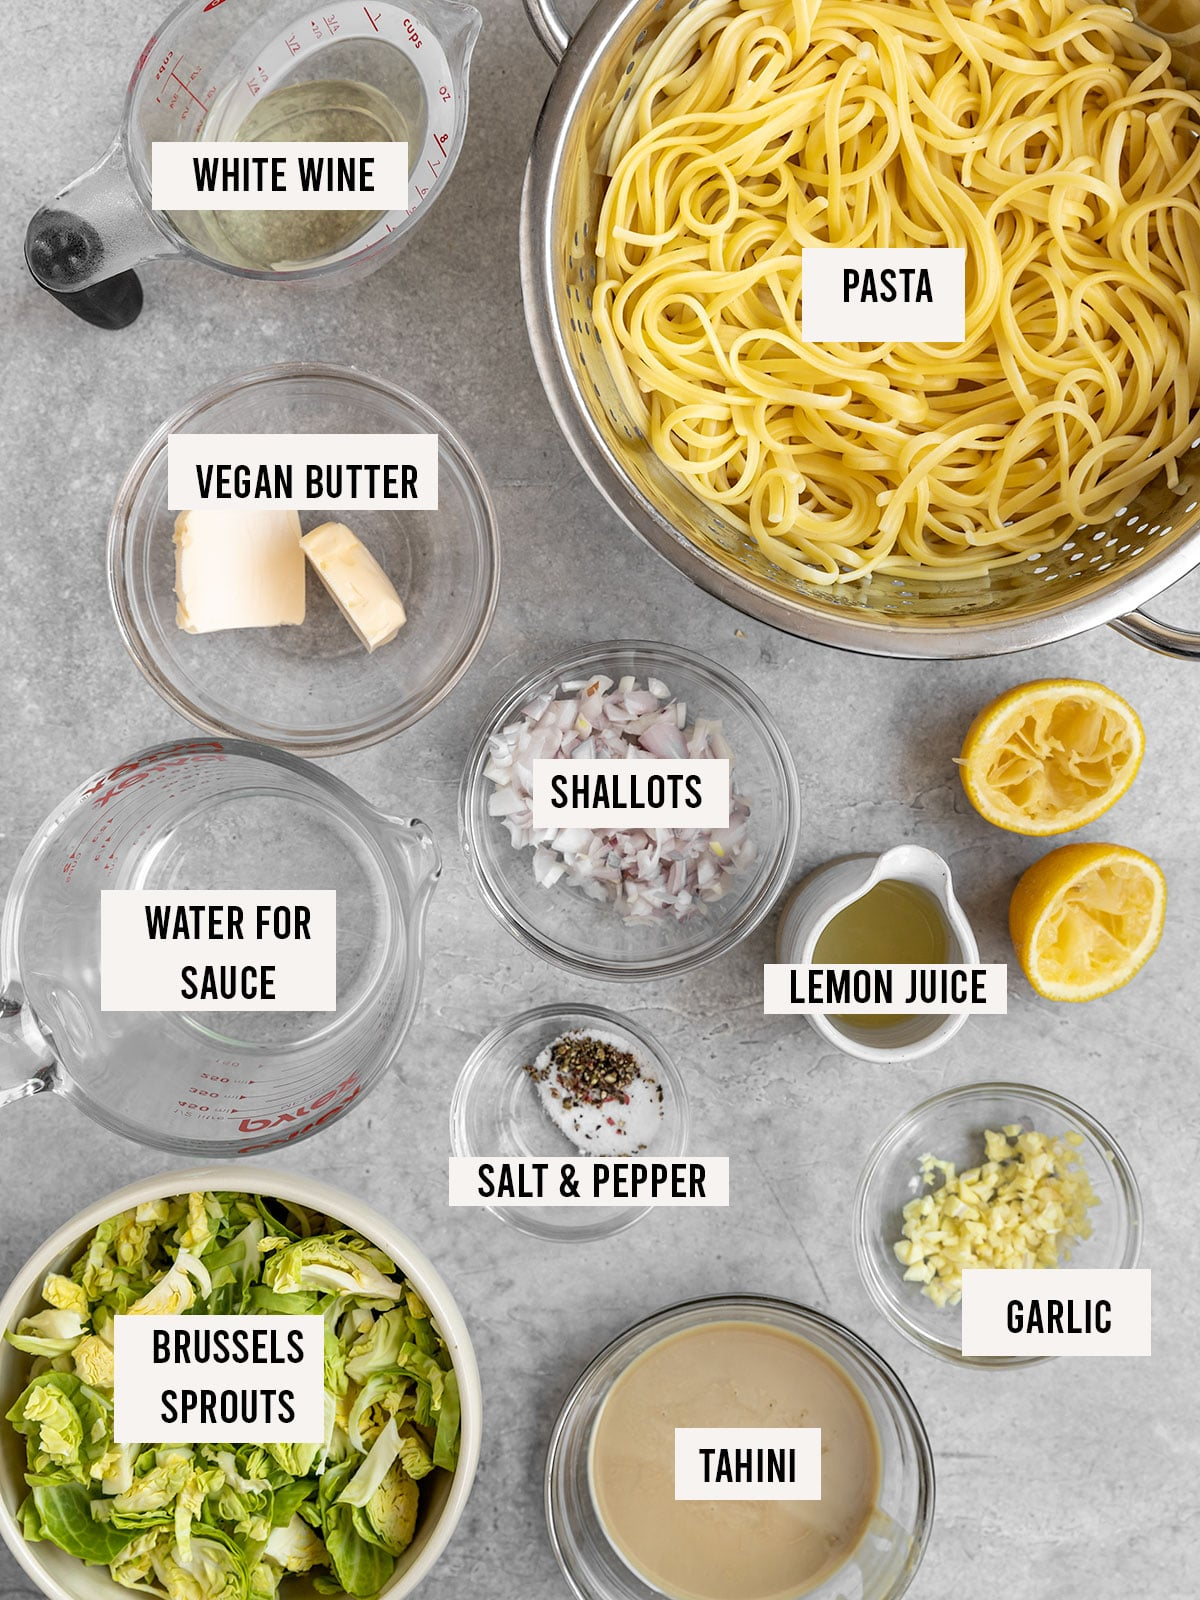 labeled ingredients for pasta including vegan butter, shallots, garlic, lemon juice, brussels sprouts, garlic, tahini, white wine